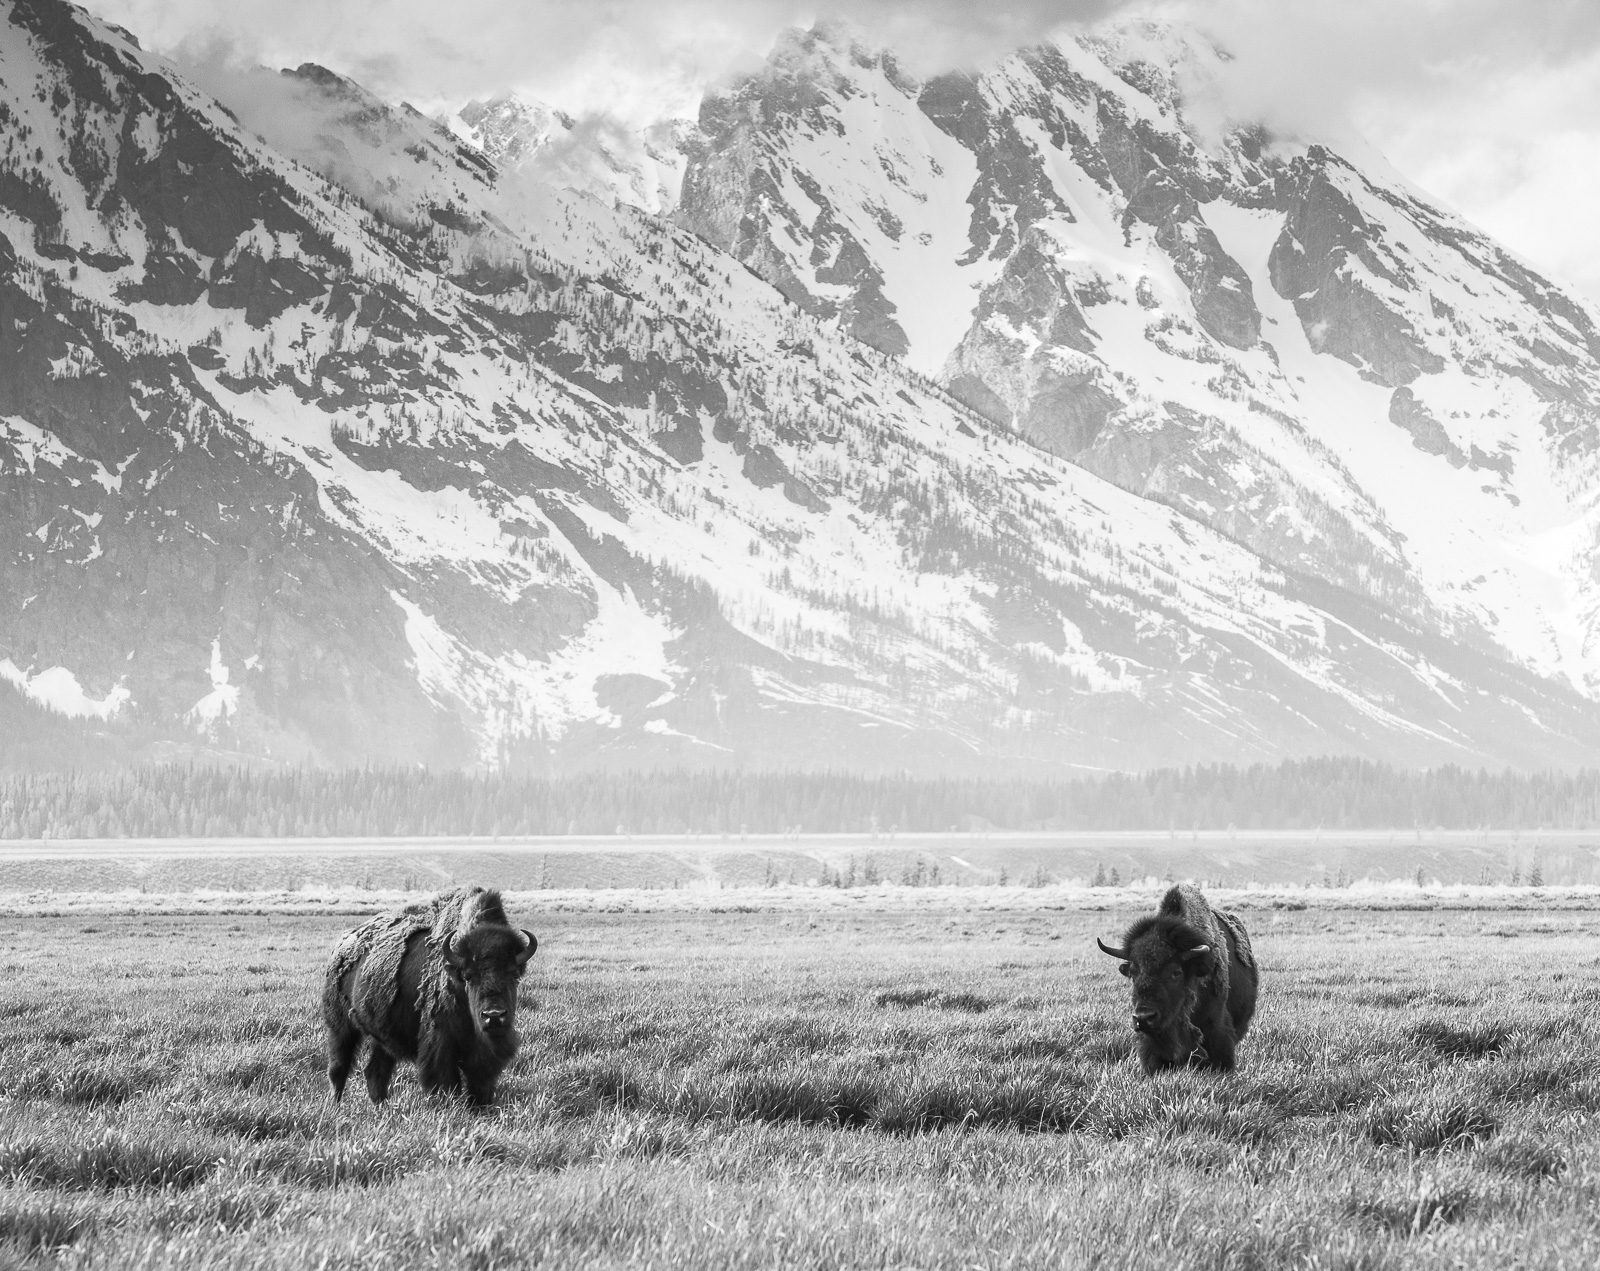 Free to Roam, Bison, Horizontal, Mountains, Wyoming, landscape, wildlife, Grand Teton National Park, BW, B&W, Black, White, photo